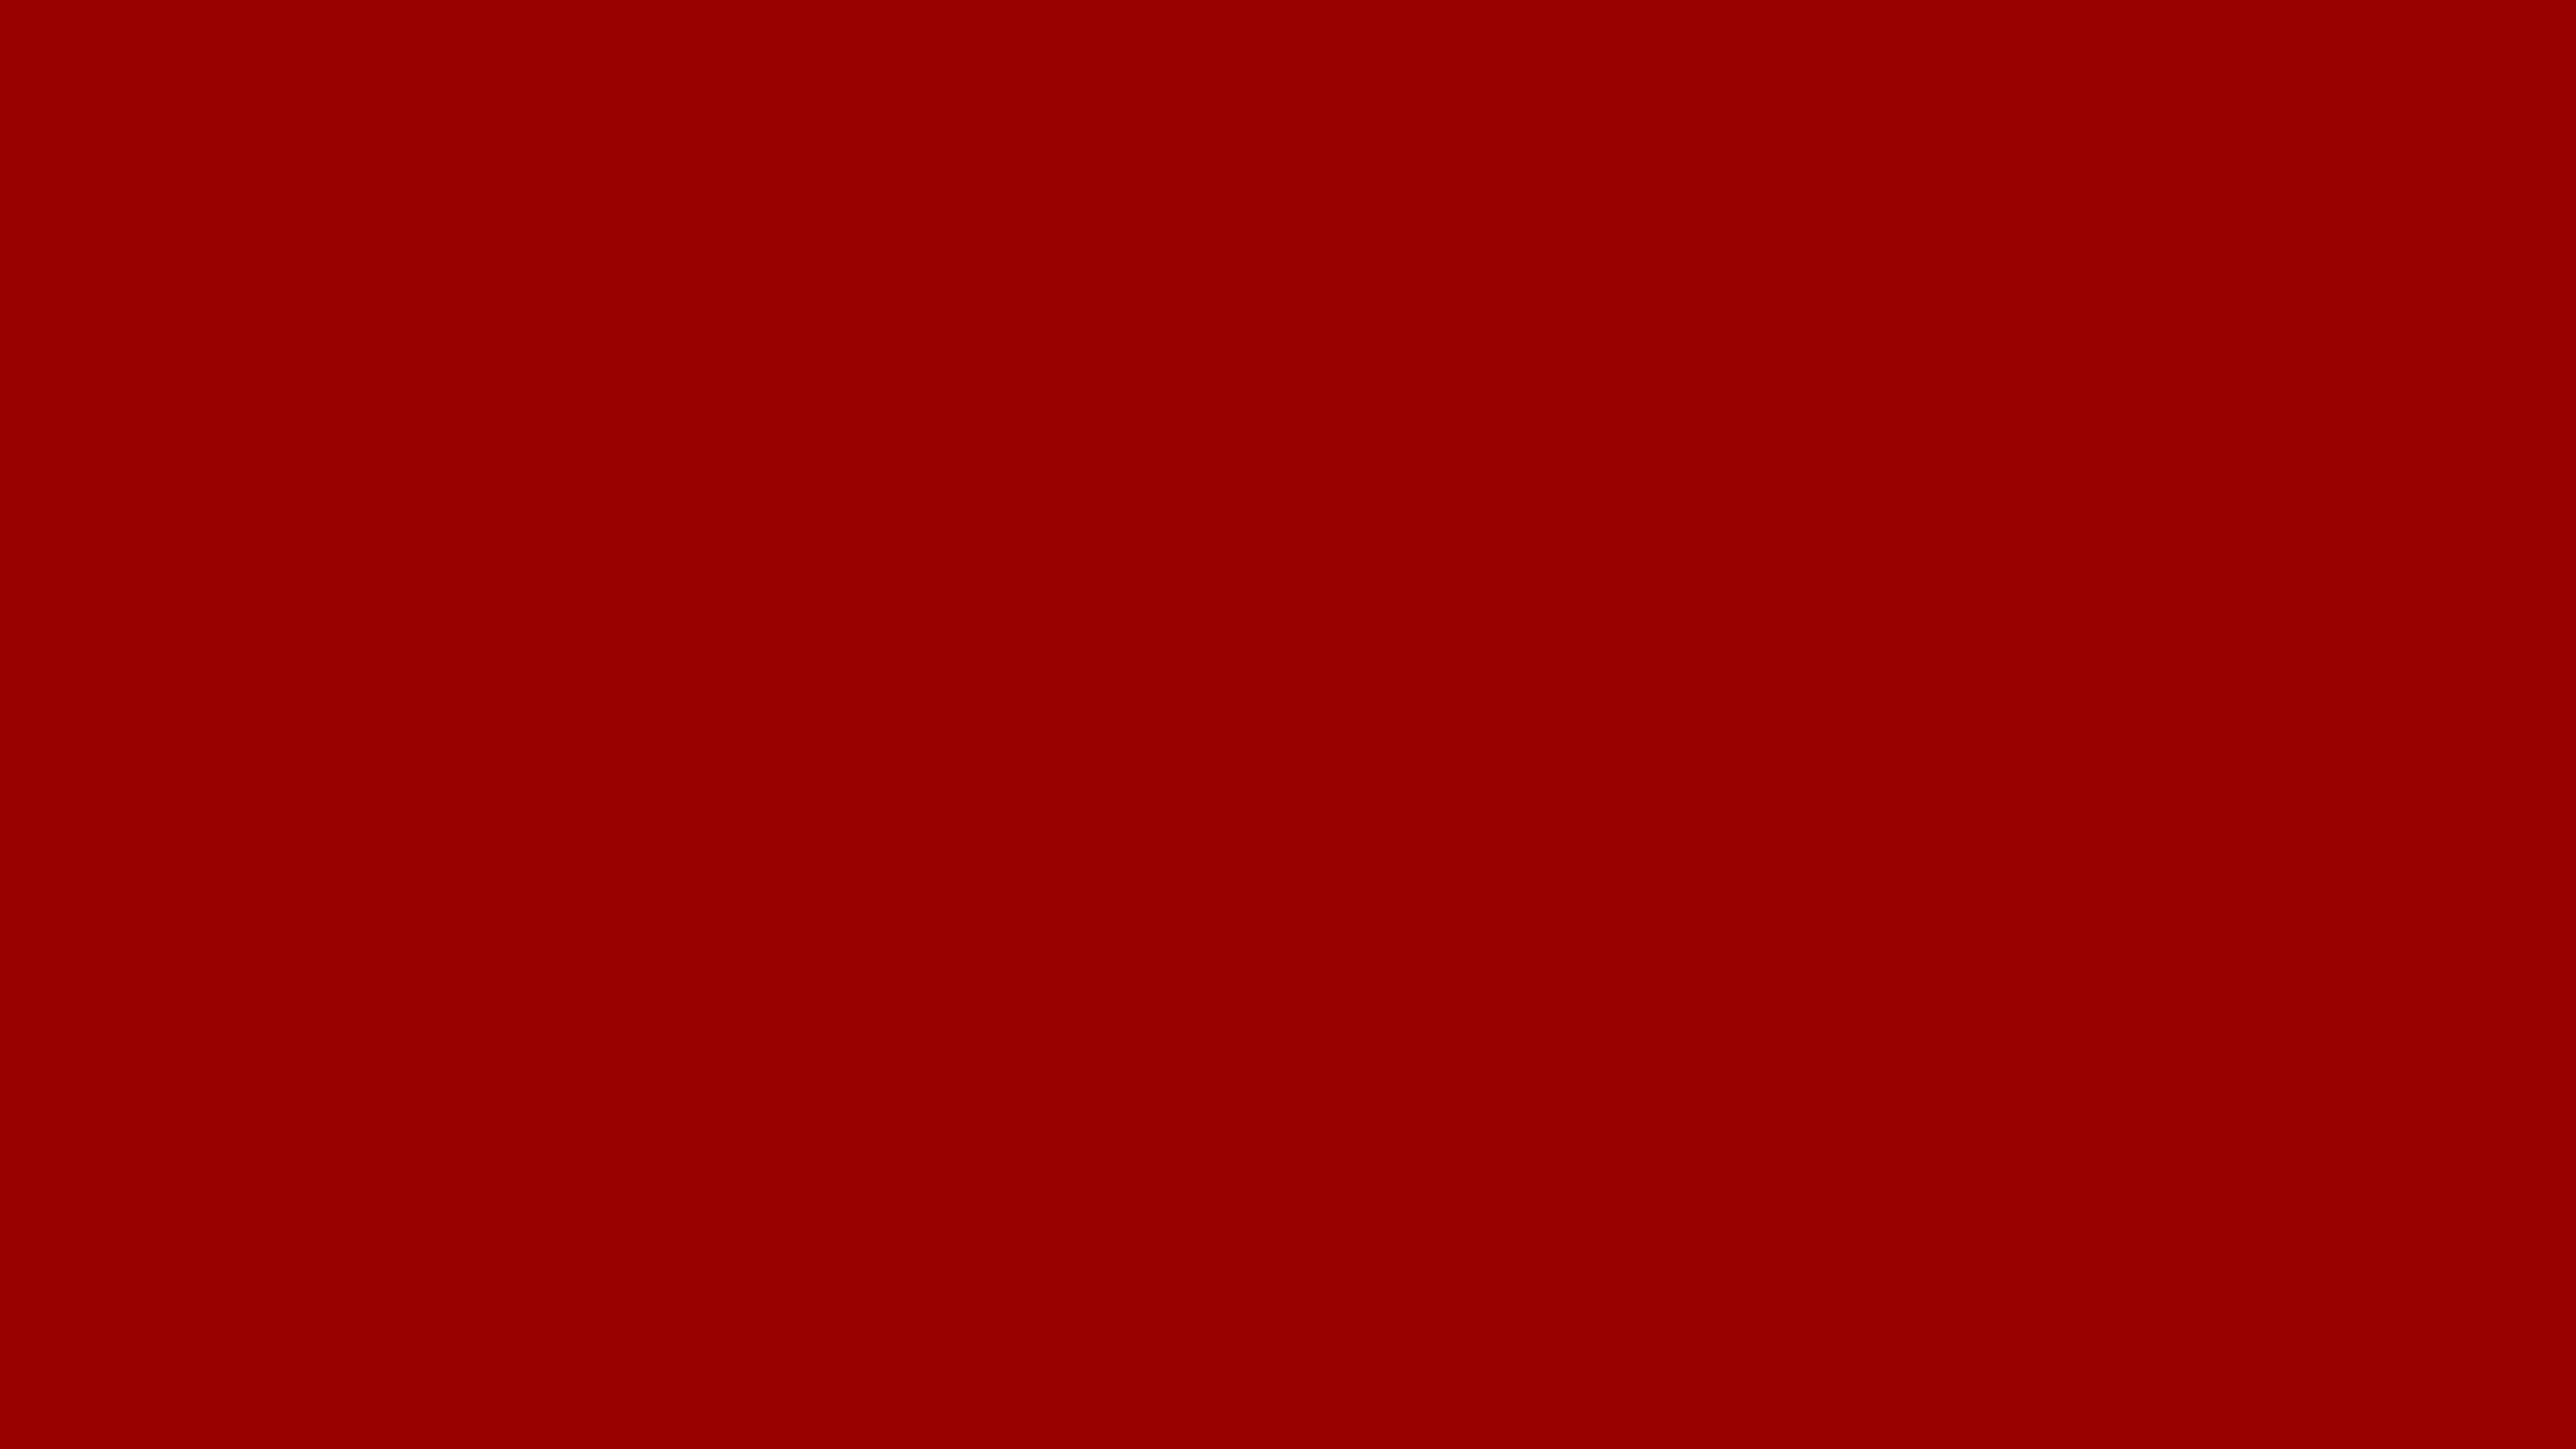 3840x2160 OU Crimson Red Solid Color Background